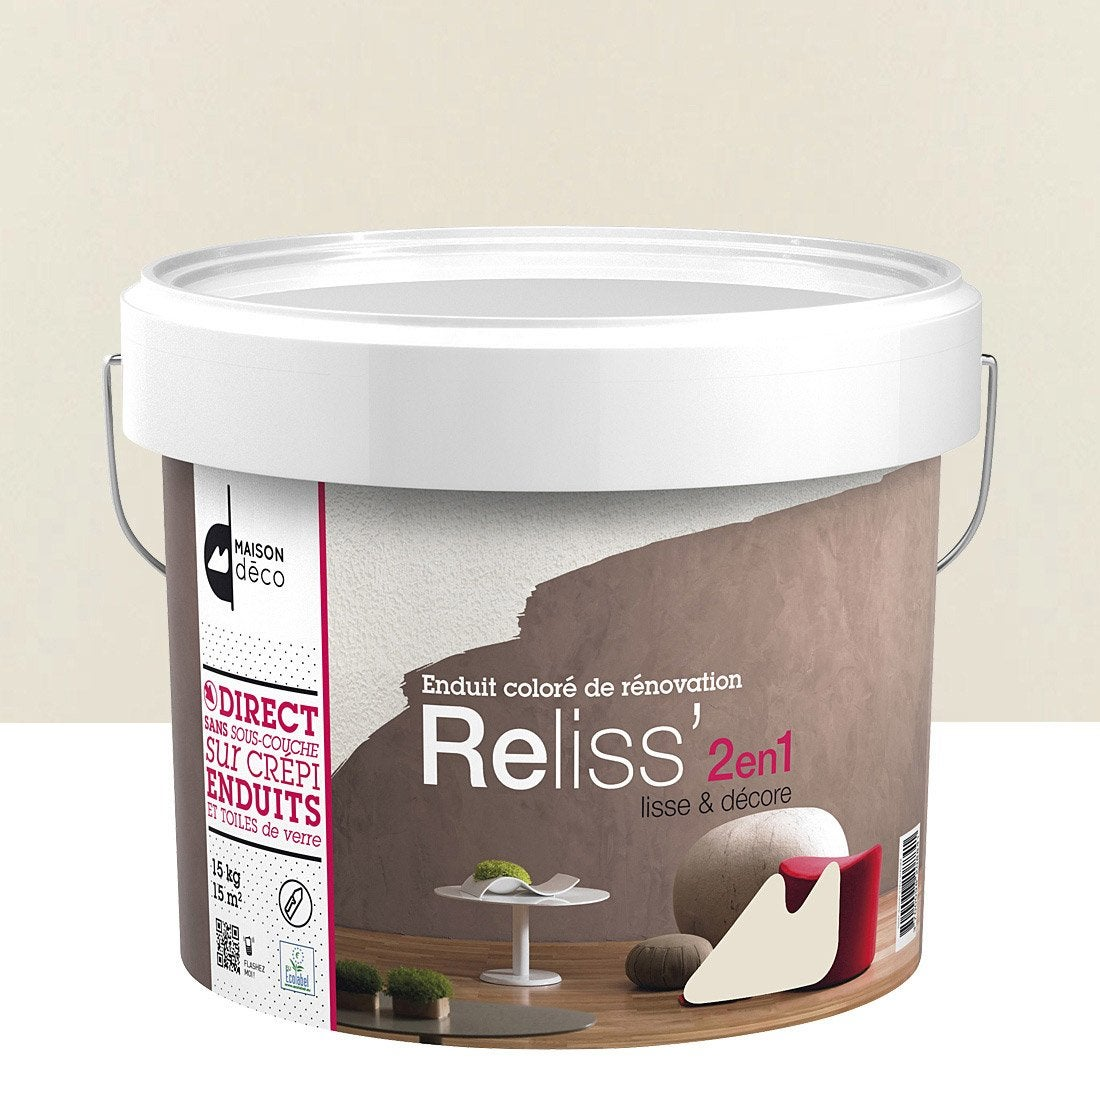 Enduit d coratif reliss 2 en 1 maison deco laine 15 kg for Enduit decoratif mur interieur